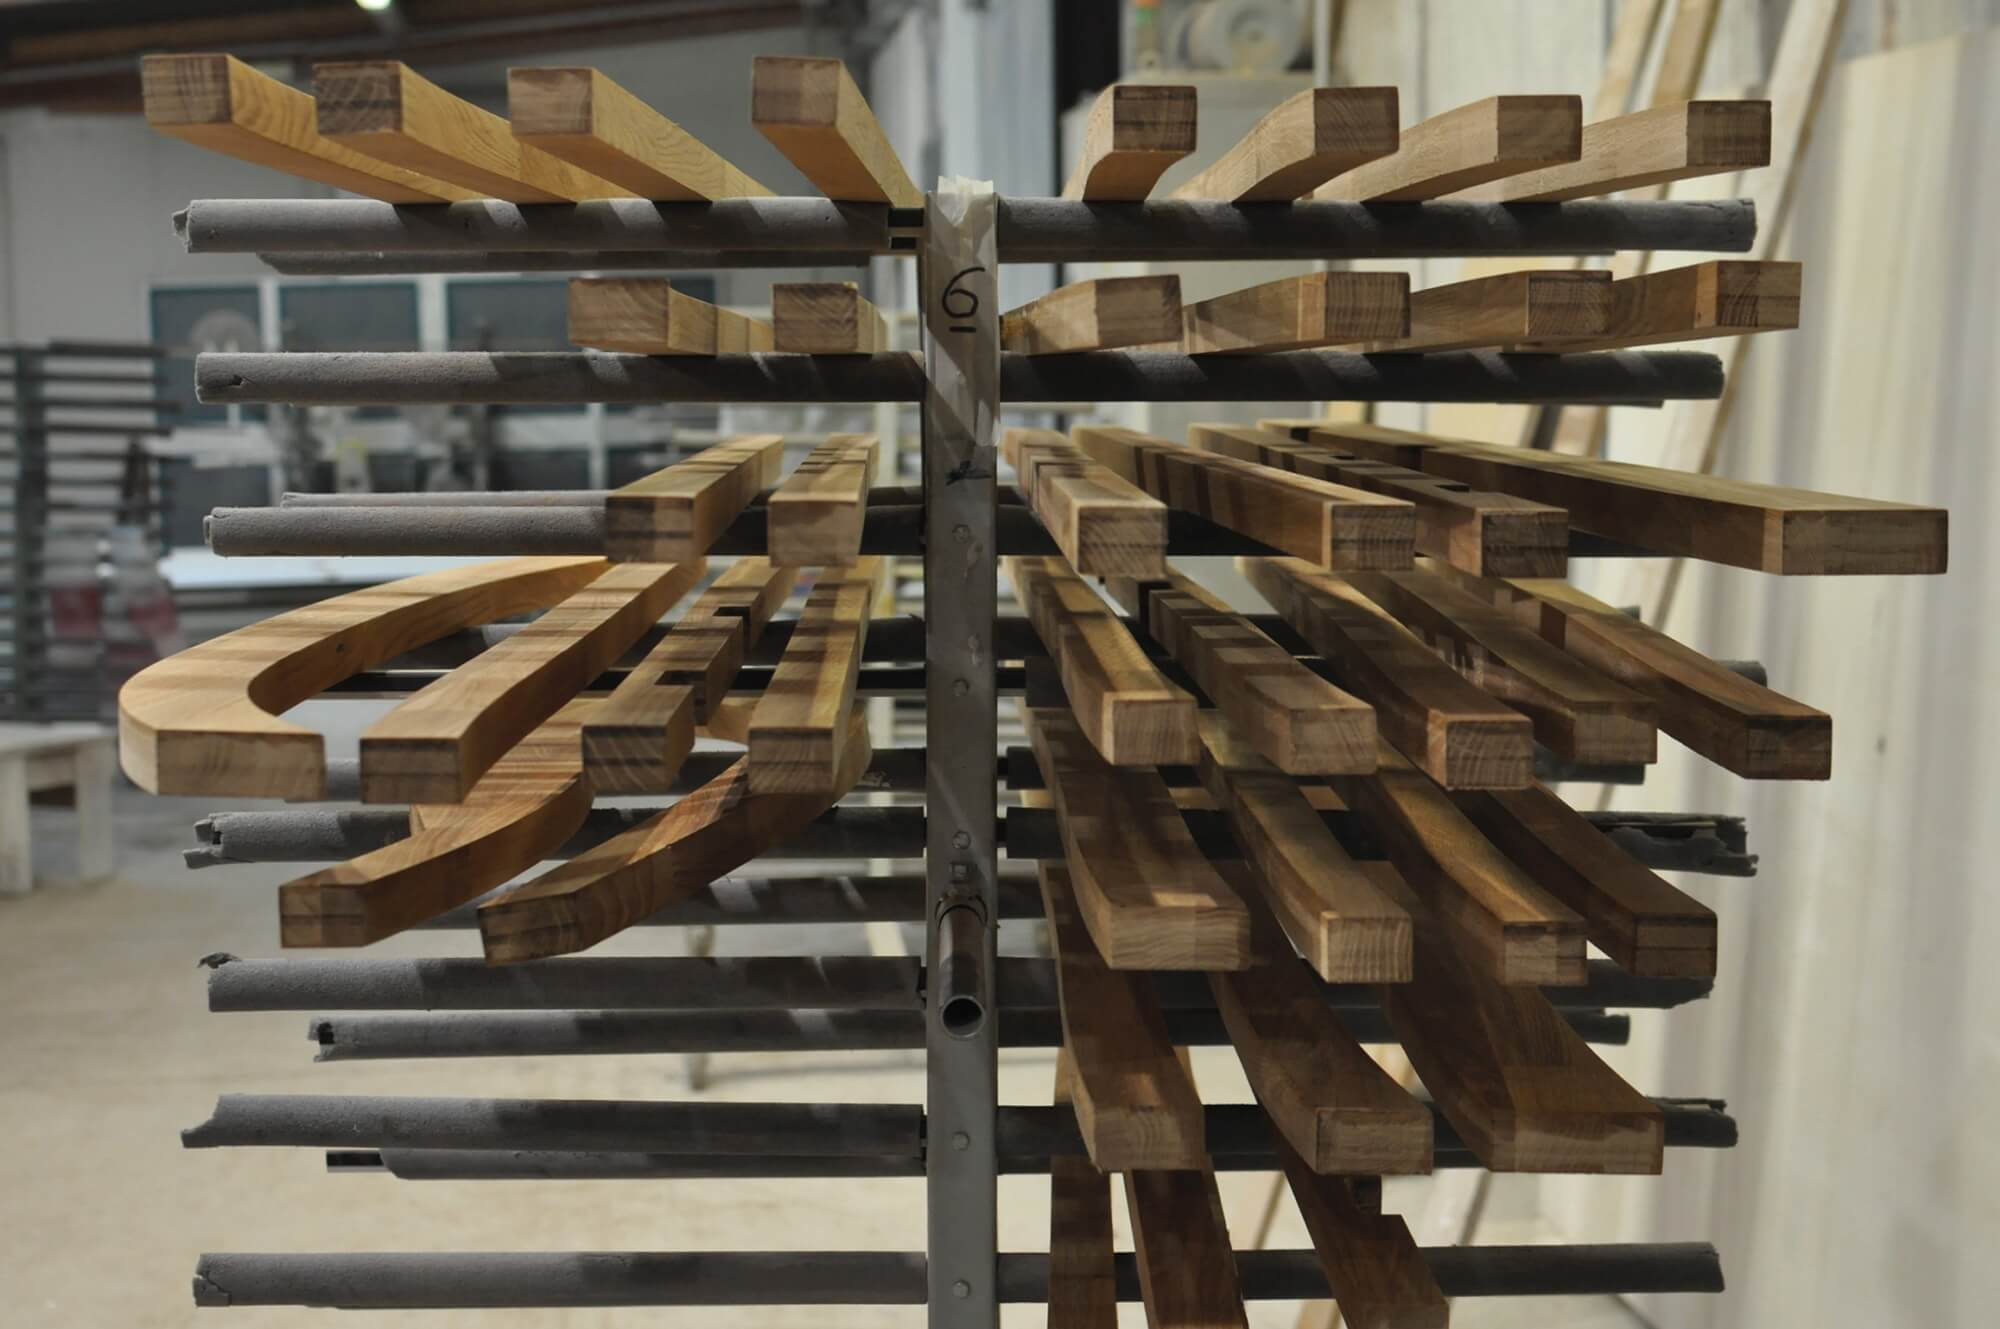 Wood on a drying rack.